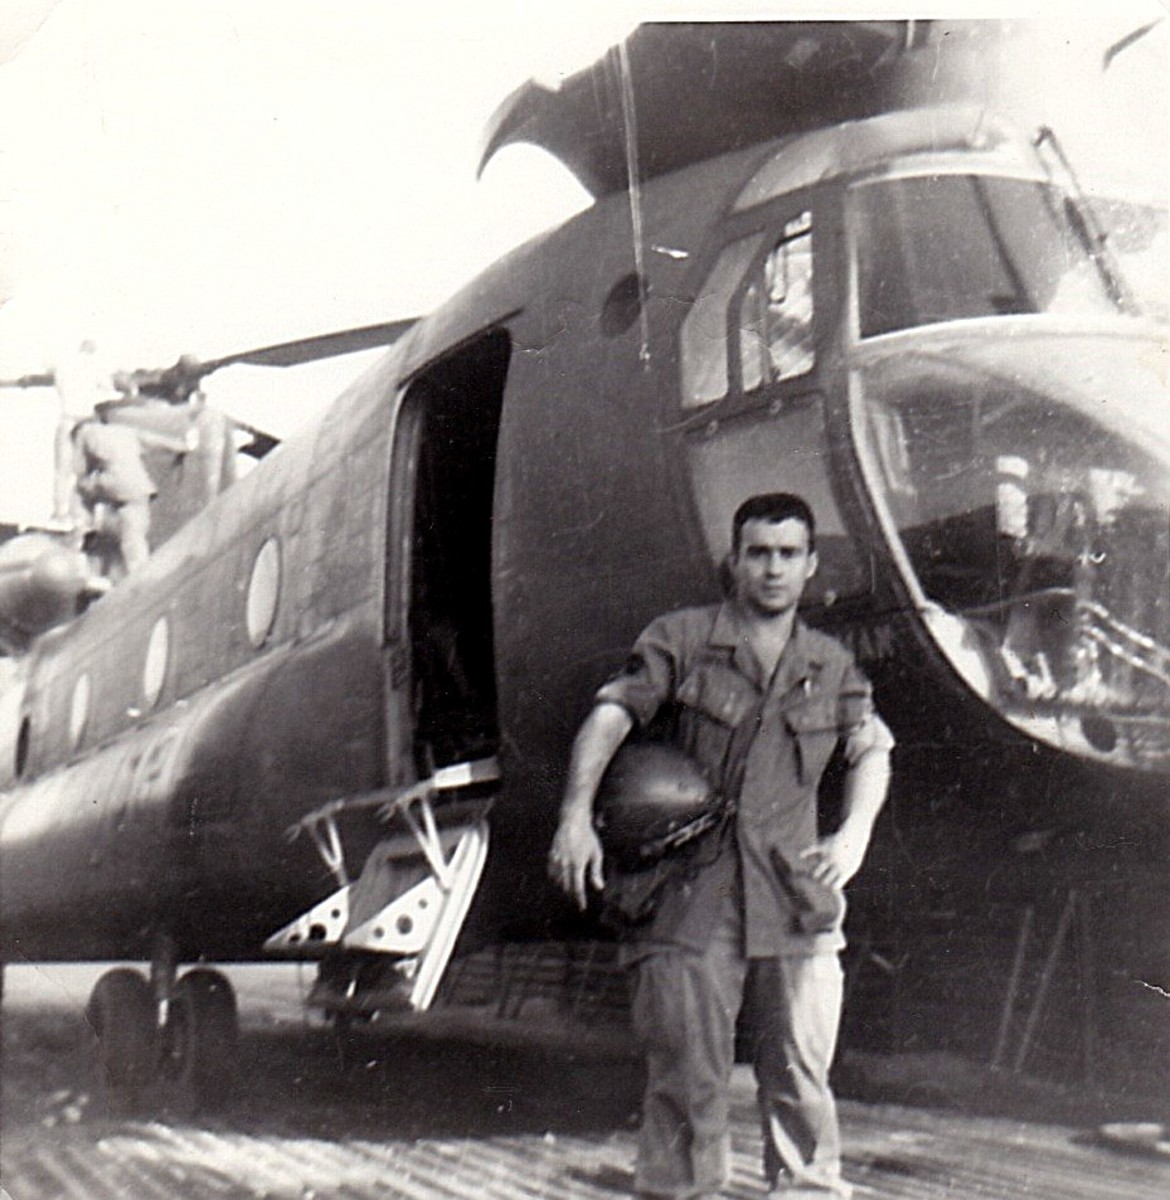 John in front of the helicopter he had to maintain.